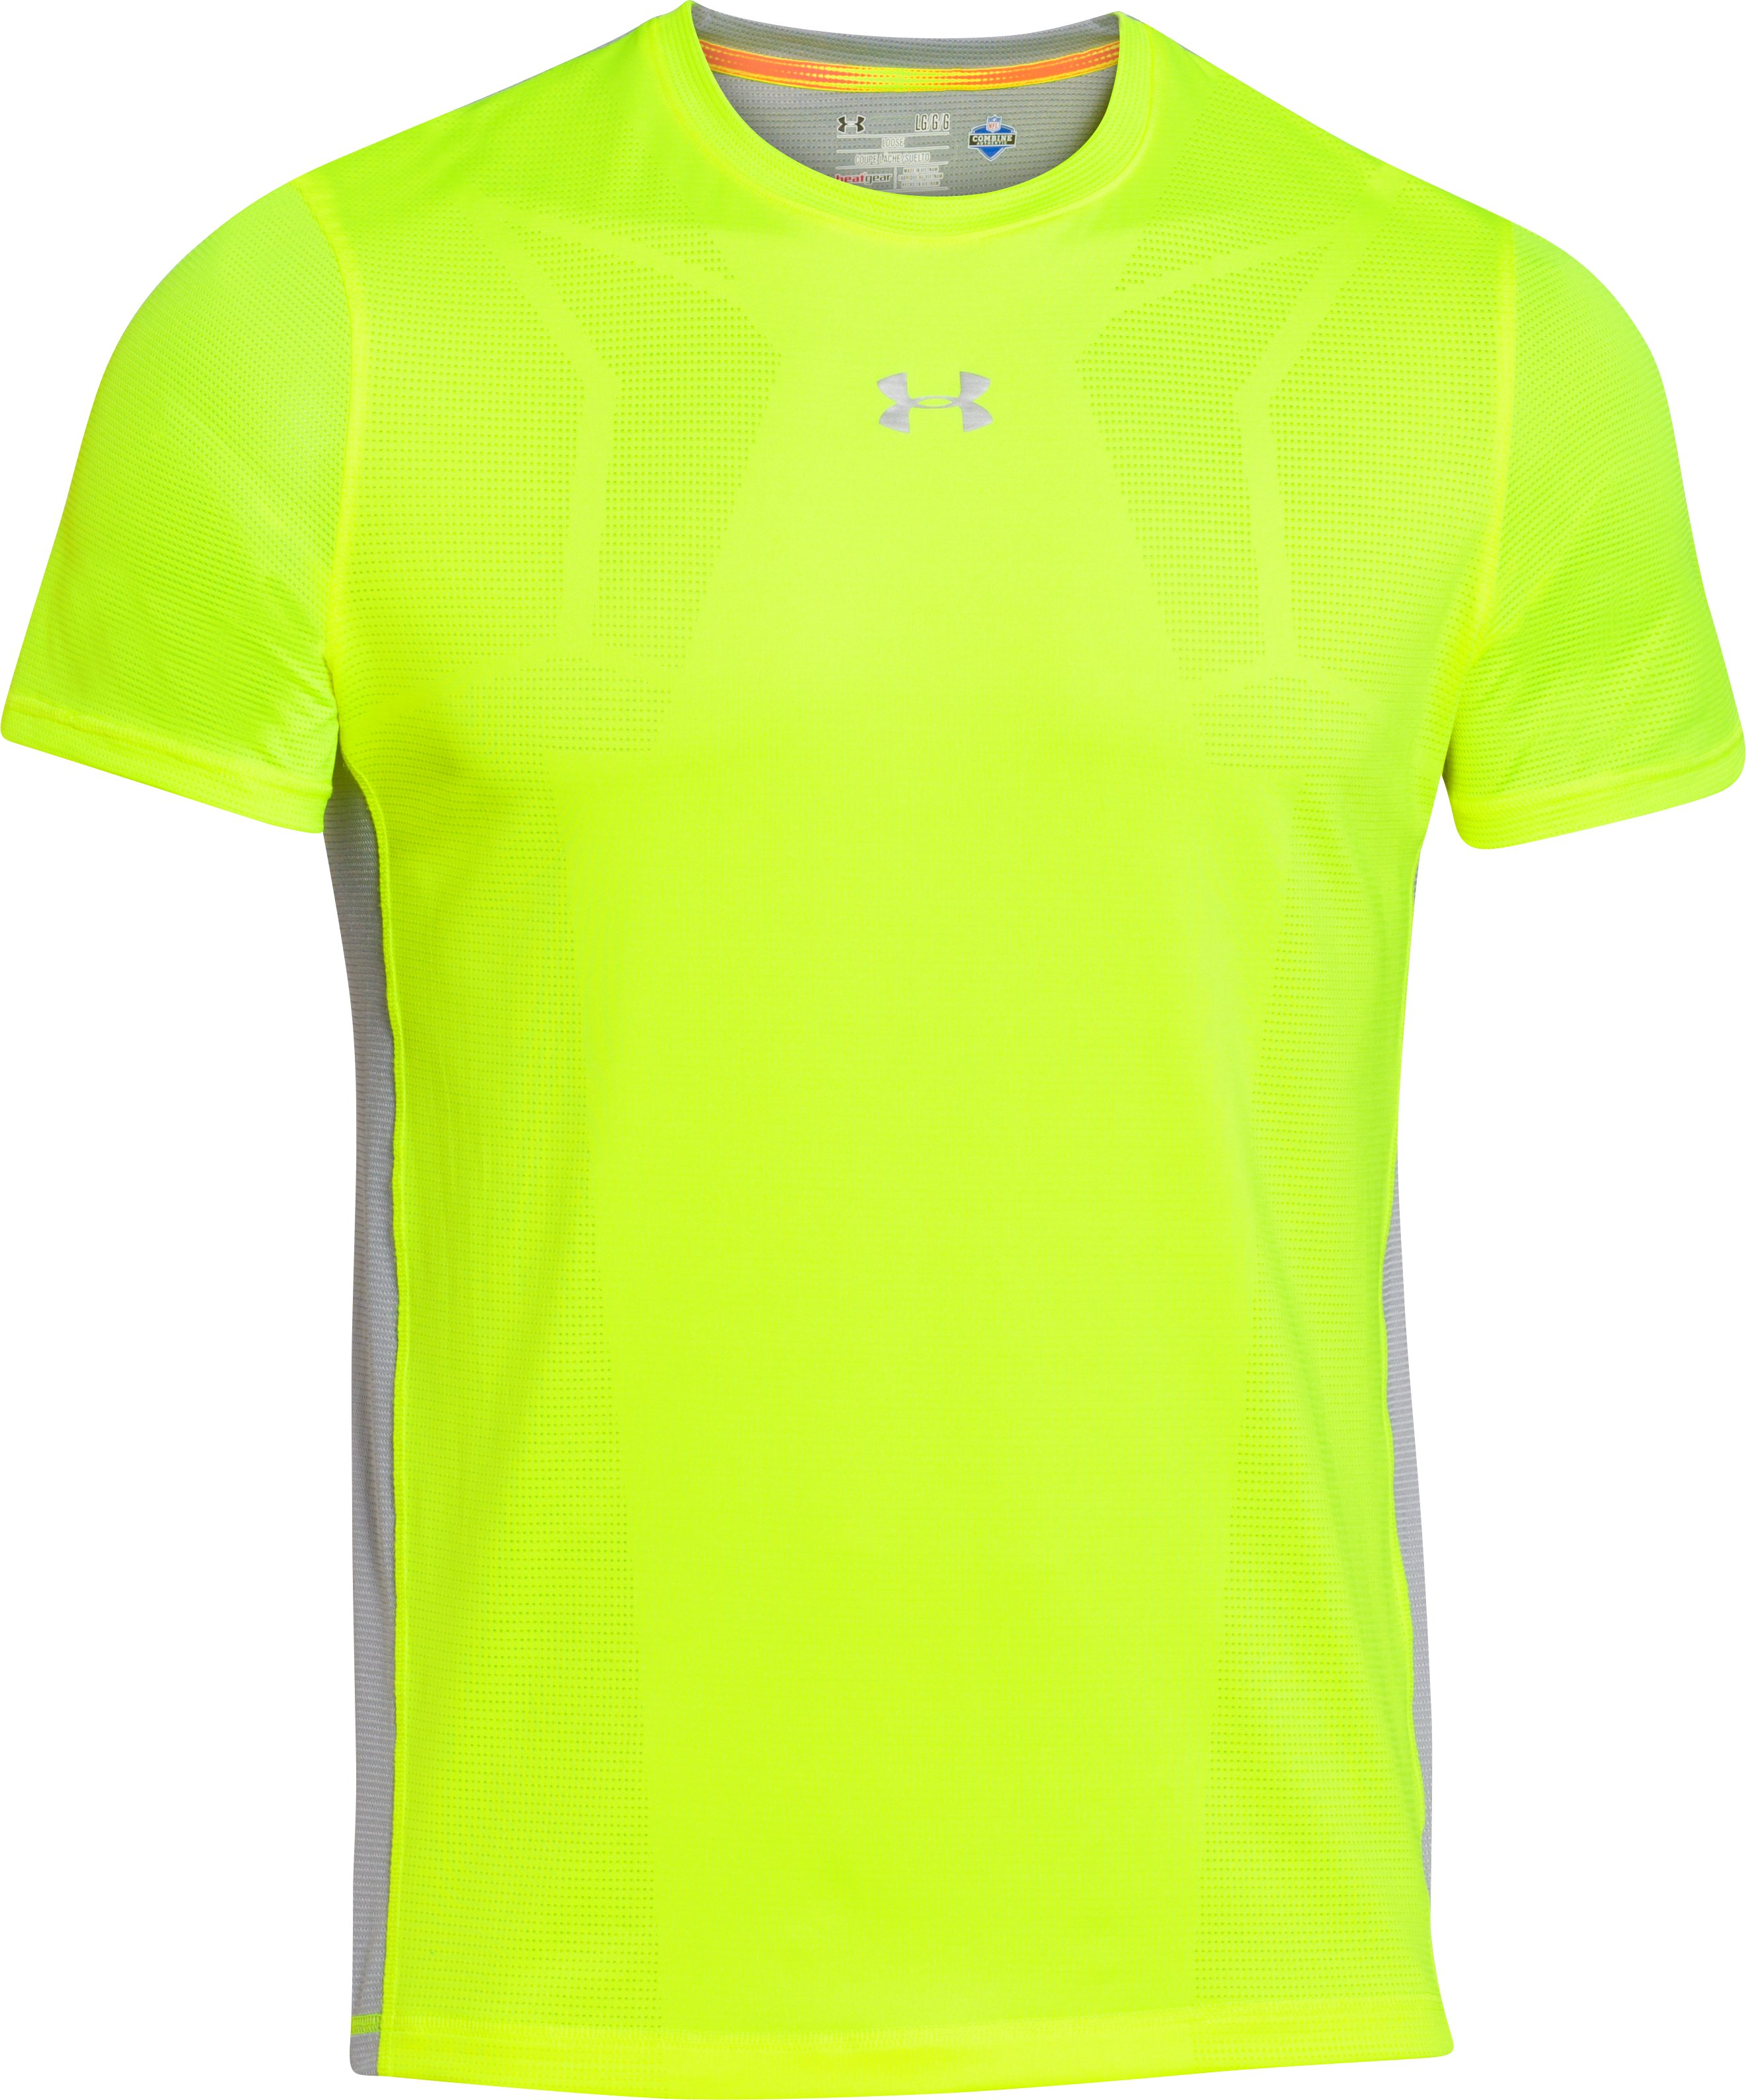 Men's NFL Combine Authentic Training T-Shirt, High-Vis Yellow, undefined